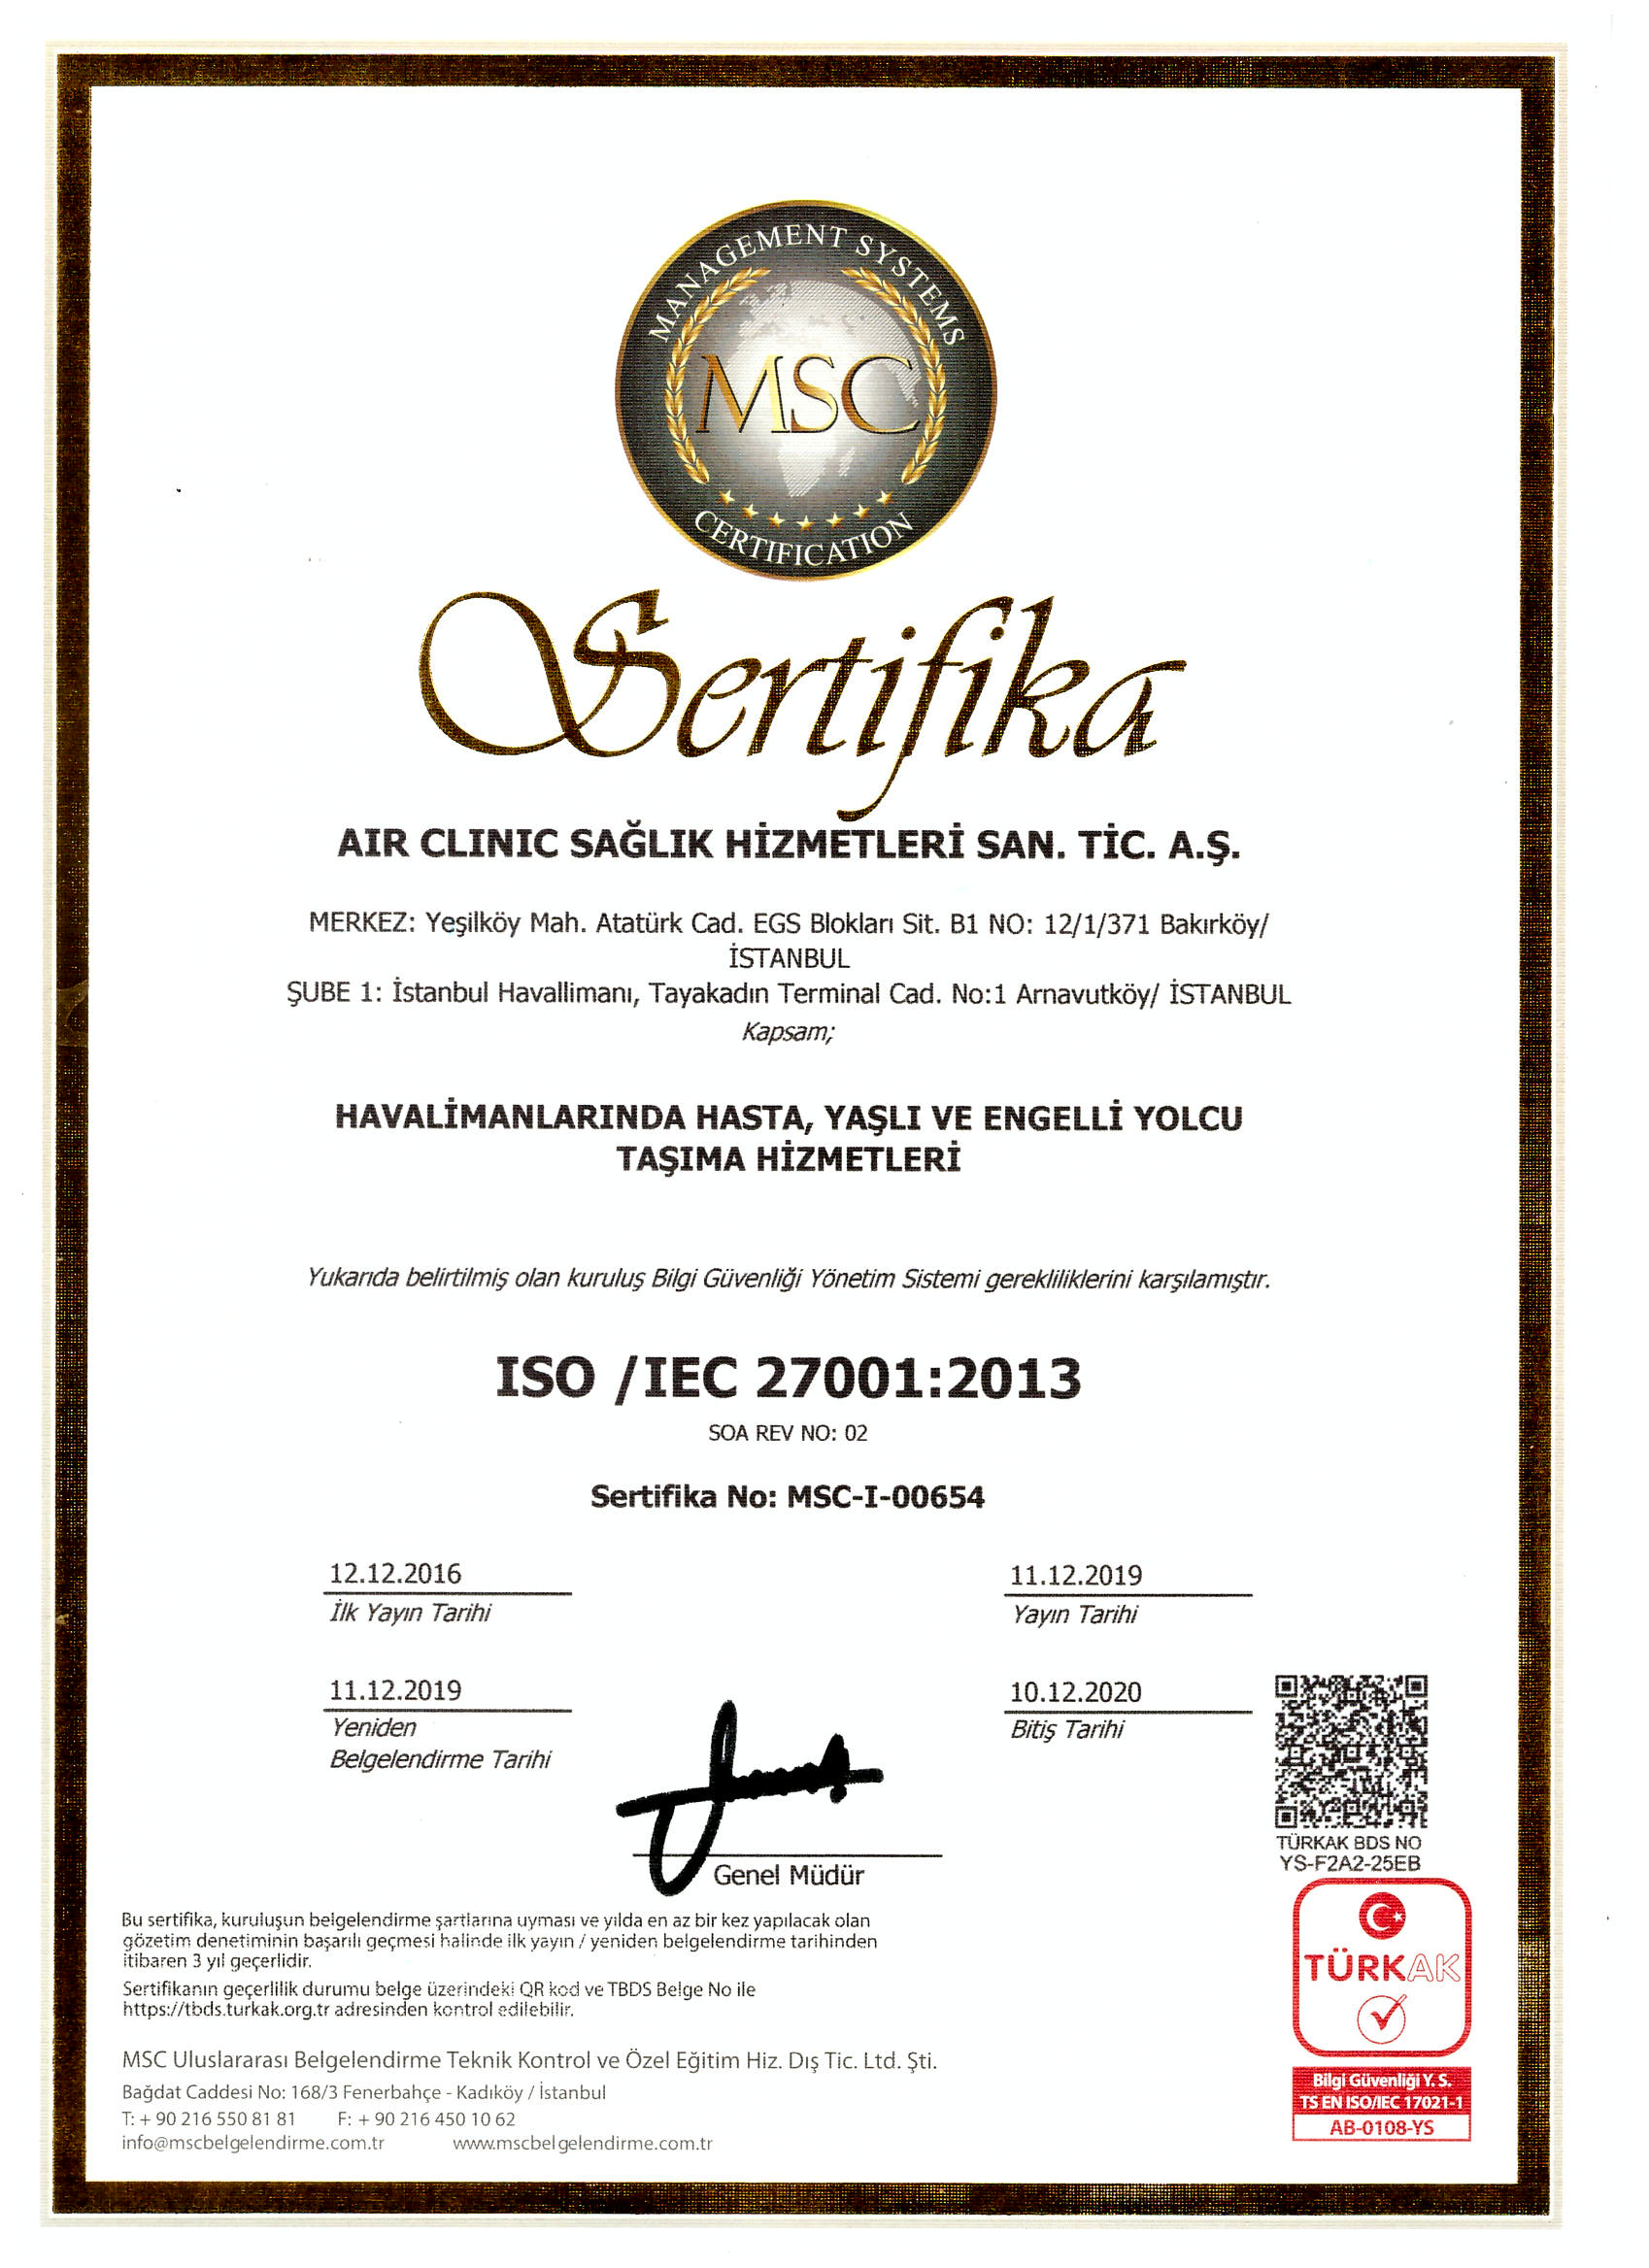 air-clinic-iso-270012013 Certificates